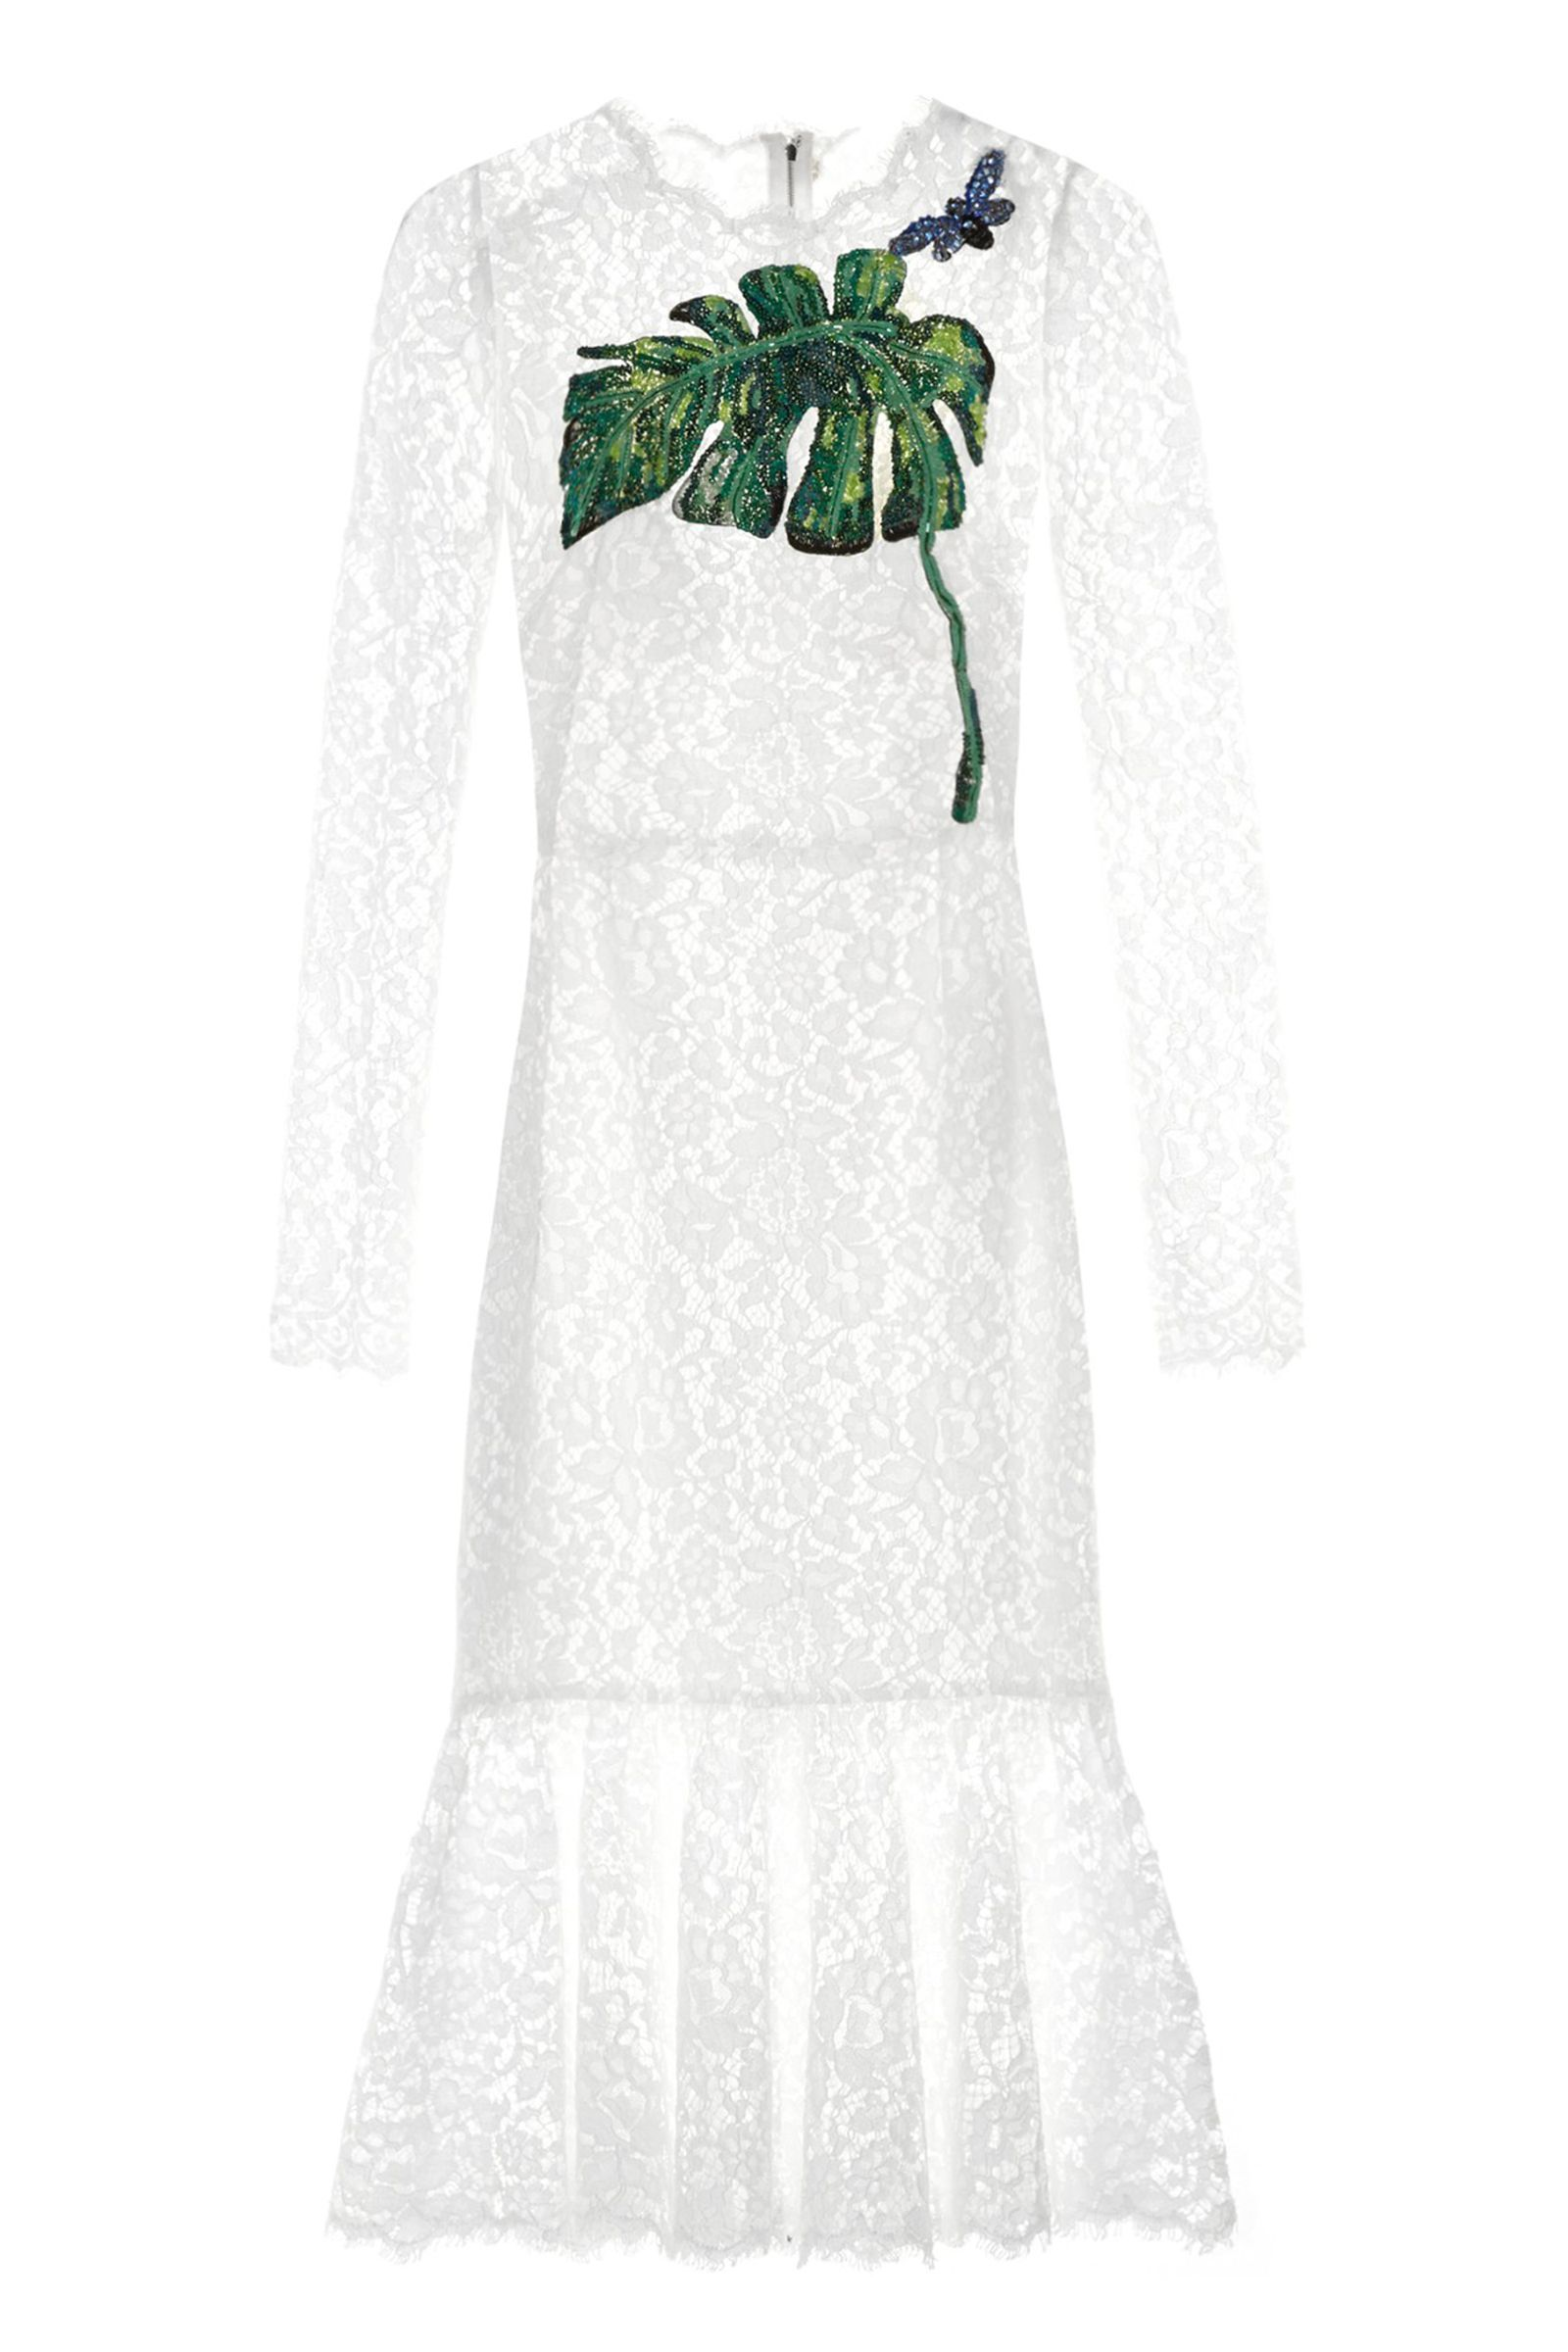 Lace dress roblox   Pretty Lace Dresses Youull Wear All Summer Long  dresses